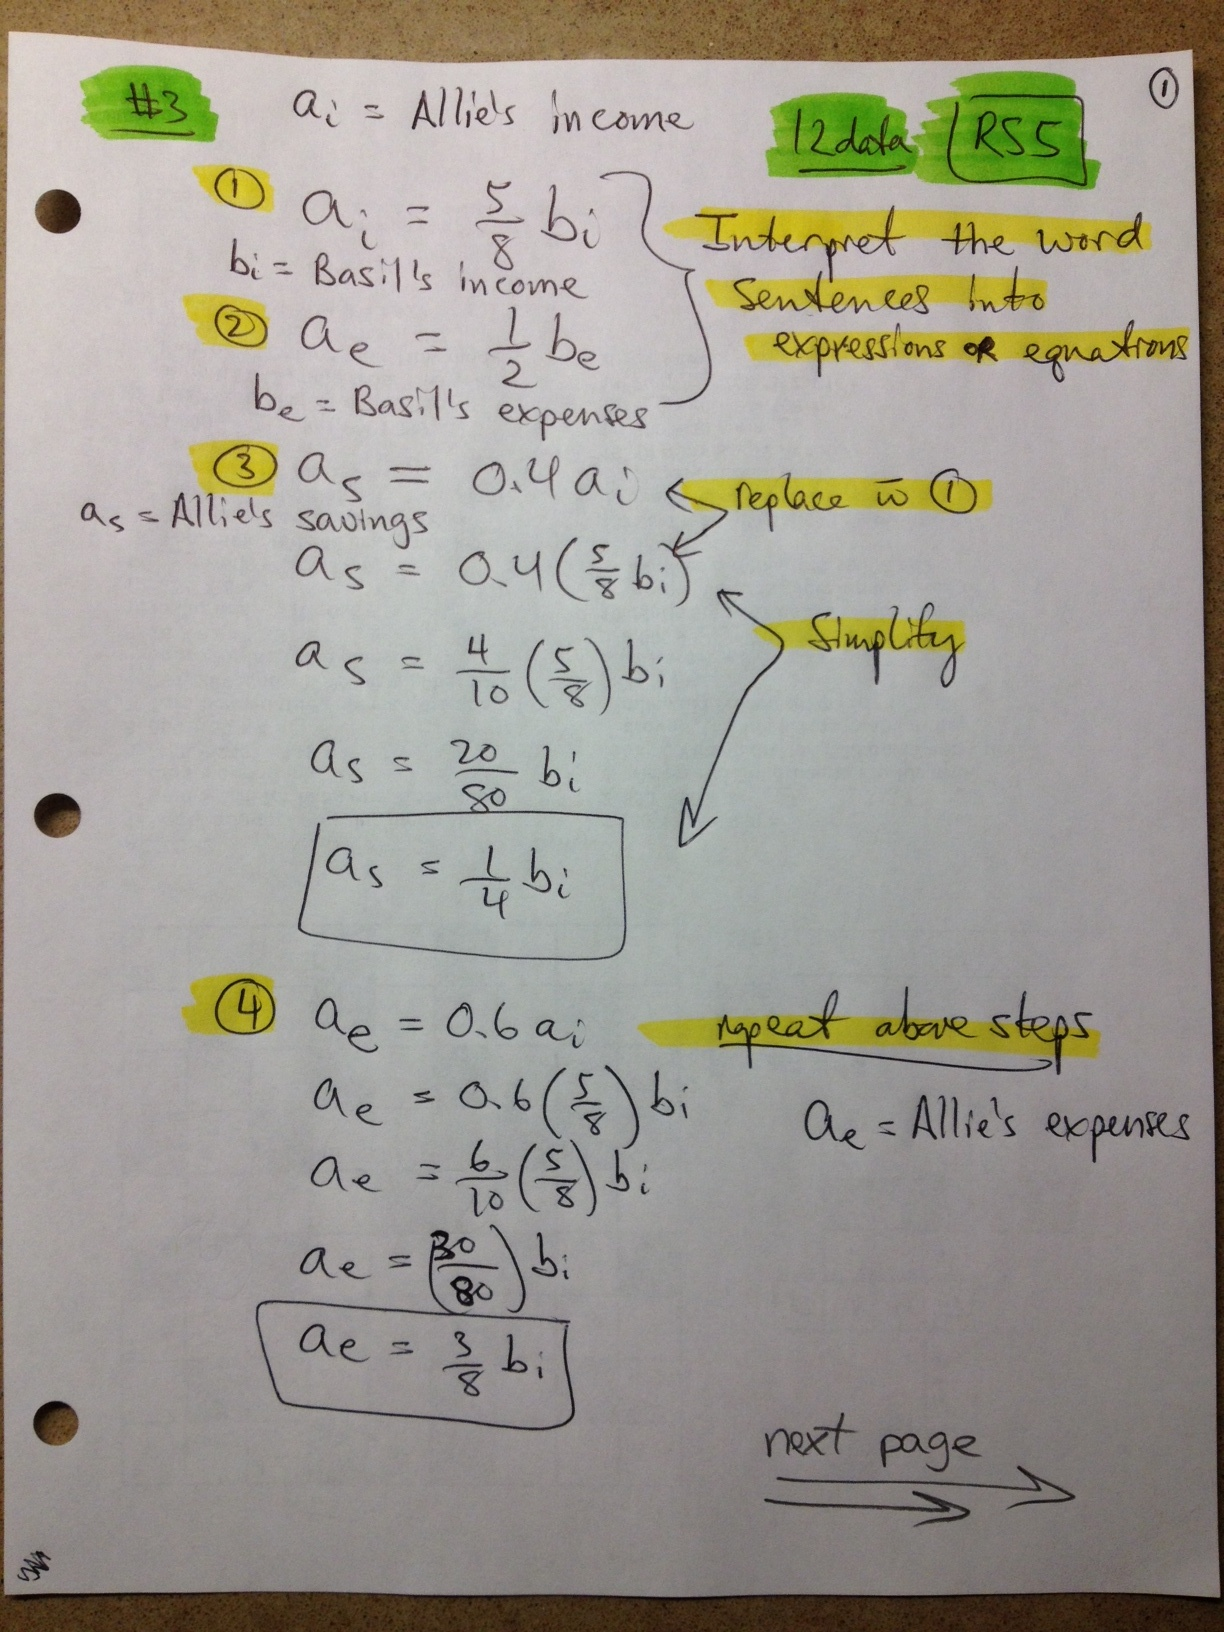 Need Math Help Grade 12 Mathematics Ontario Canada Notes Formulas And Diagrams Alternate Solution For Question 3 Page 1 Download